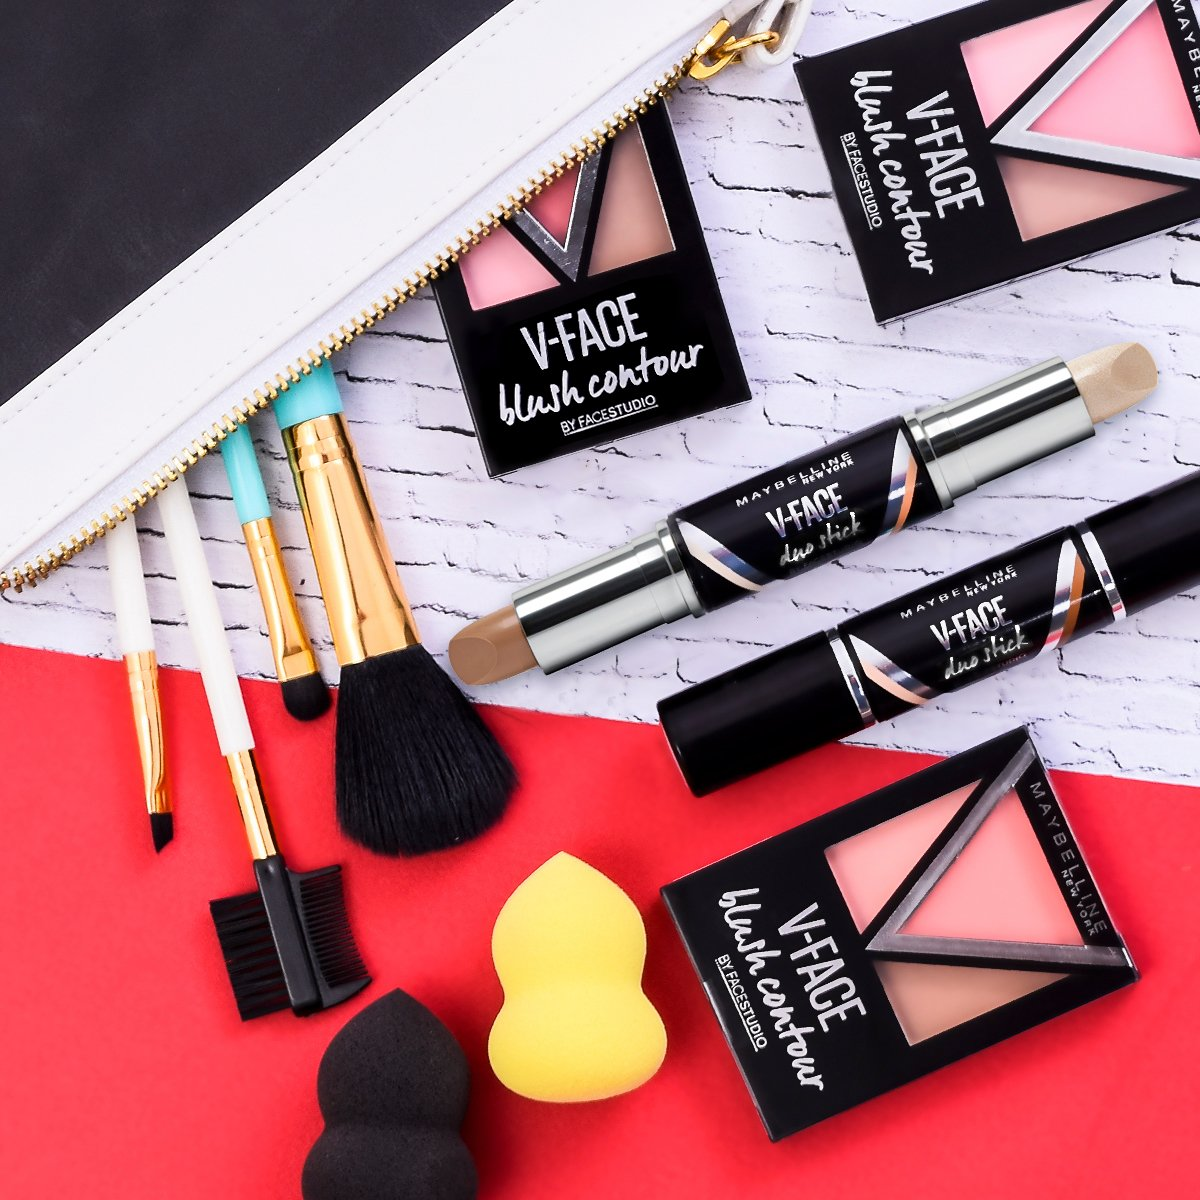 Maybelline Indonesia On Twitter The Easy Trendiest Sculpted Face Meyne V Is Perfect For Your Tgif Night Sudah Coba Duo Stick Blush Contour